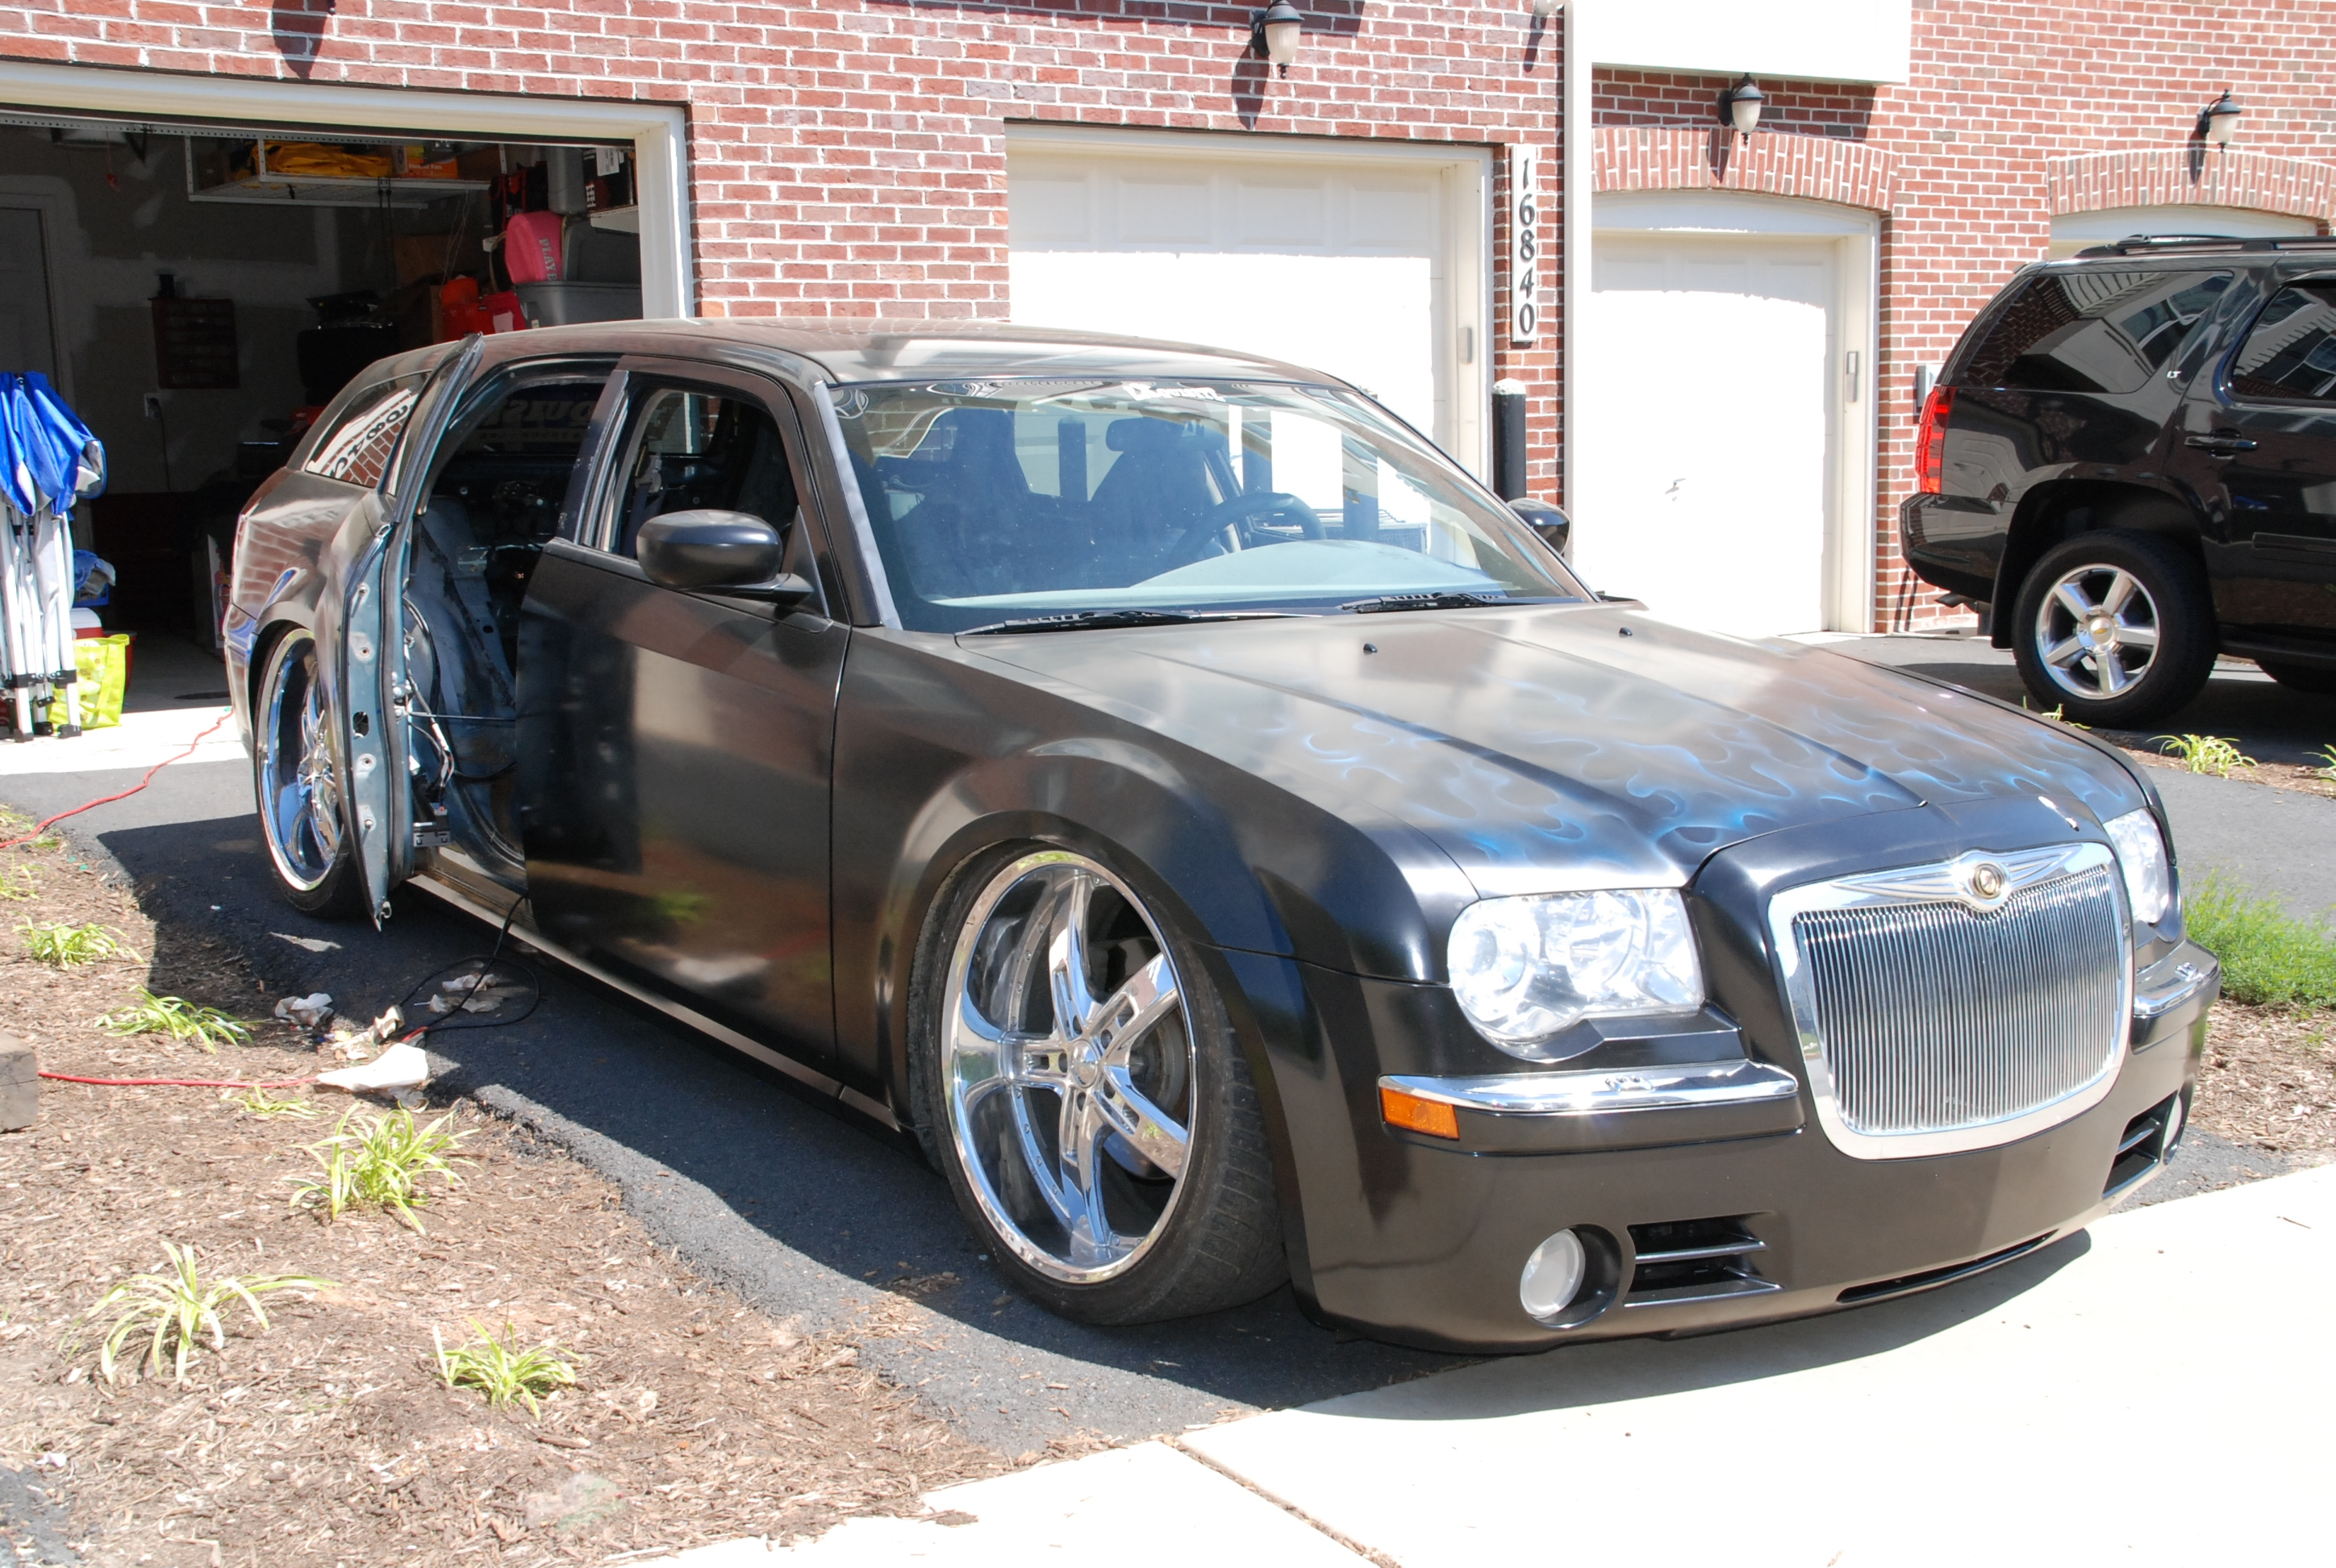 notorious170's 2005 Dodge Magnum